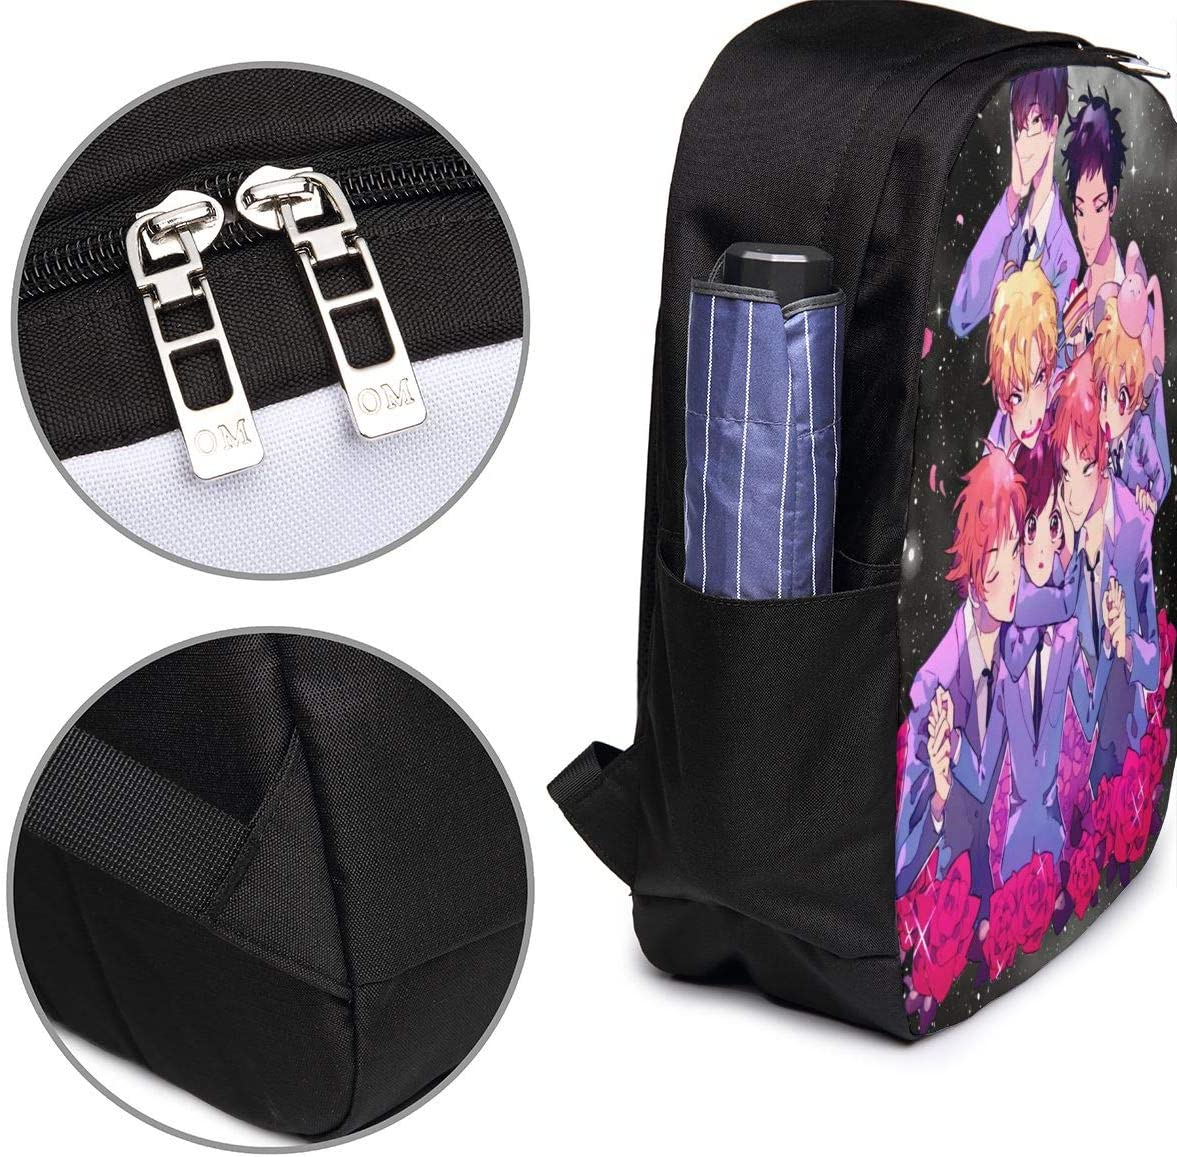 Travel Bag Mountaineering Bag Chenhgee Ouran High School Host Club 3D Printing 17in with USB Backpack,School Bag